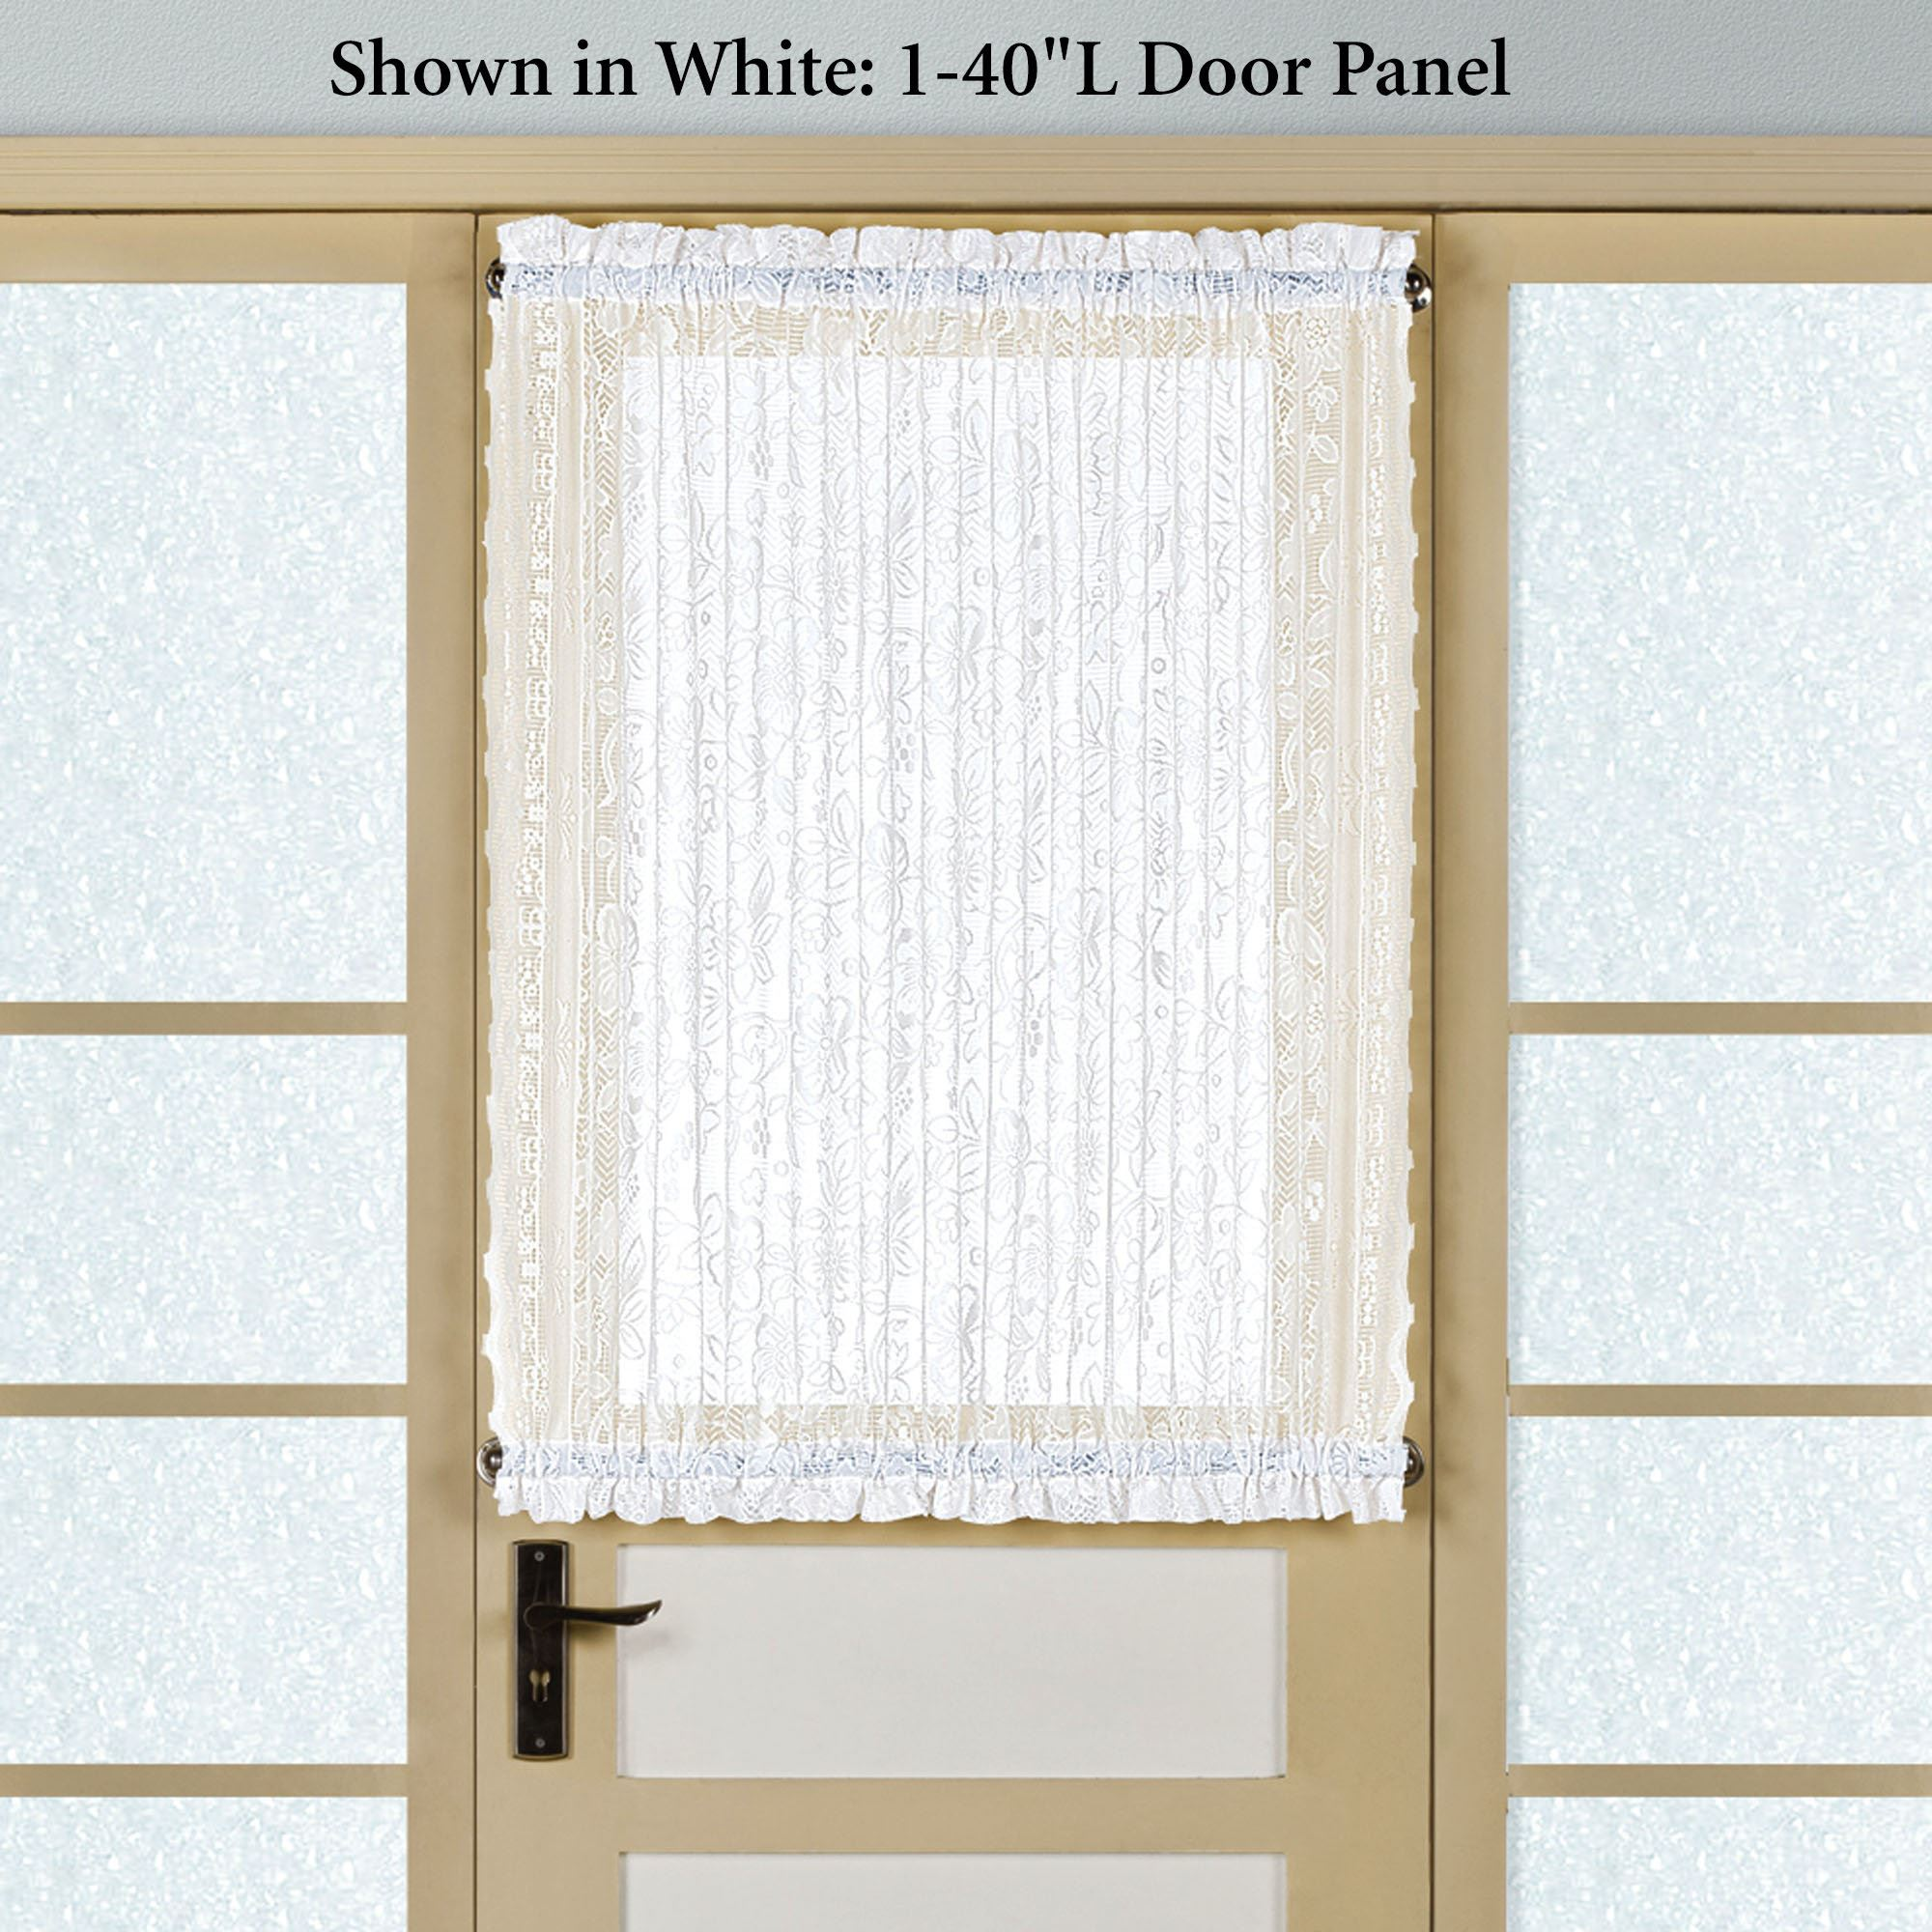 best window panel door ideas rod pocket tfile and new shocking picture curtains of curtain popular for u luxury half pict